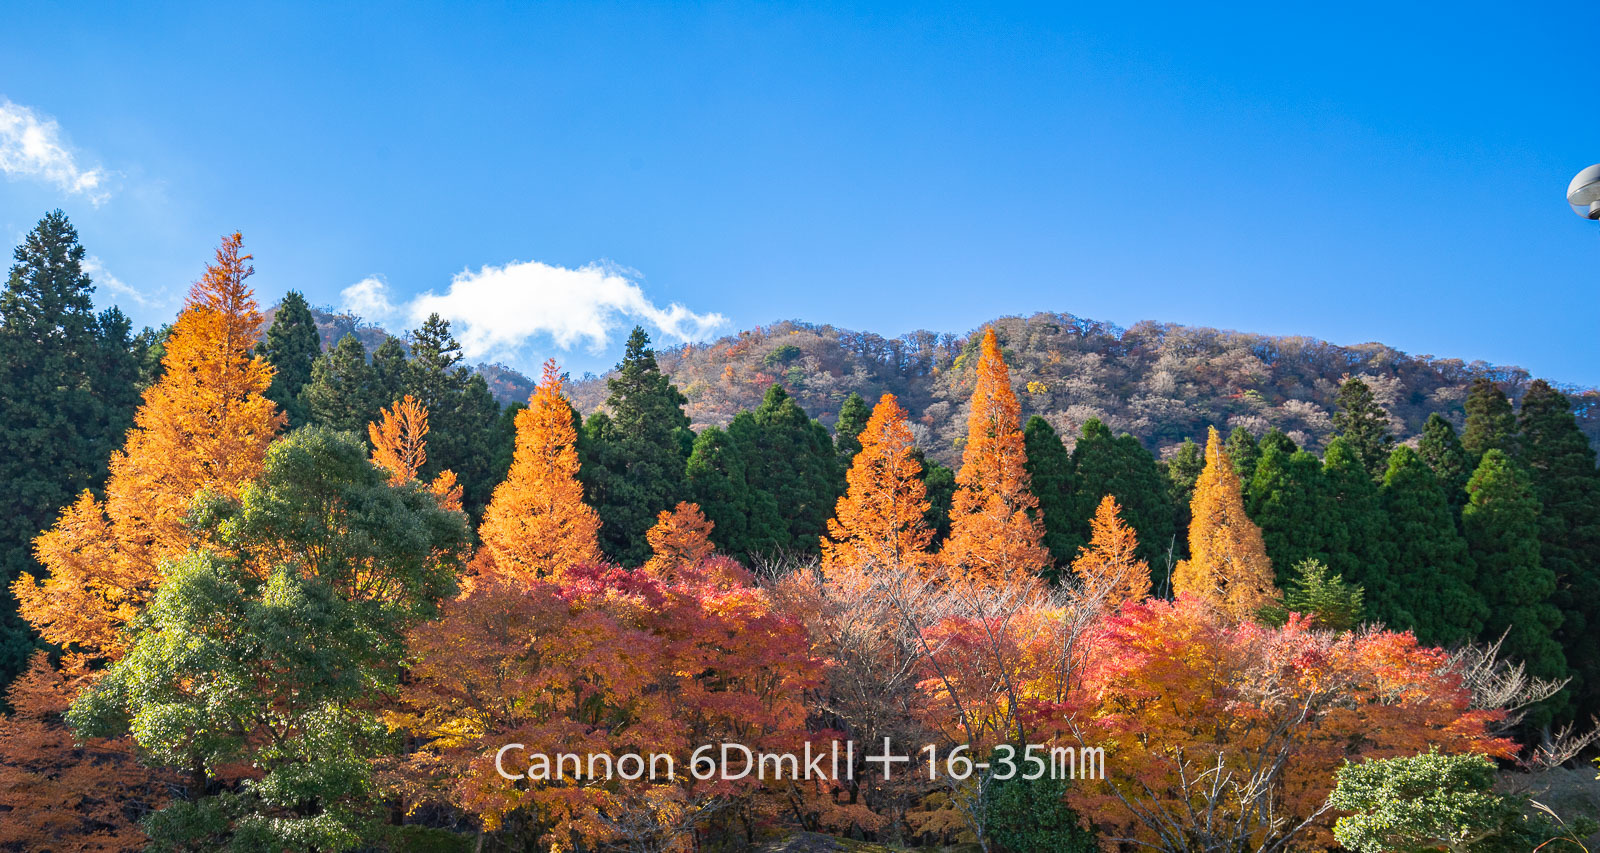 181103 英彦山紅葉6ⅮⅡ-11 Canon EOS 6D Mark II ISO 200 30 mm 6240 x 3326